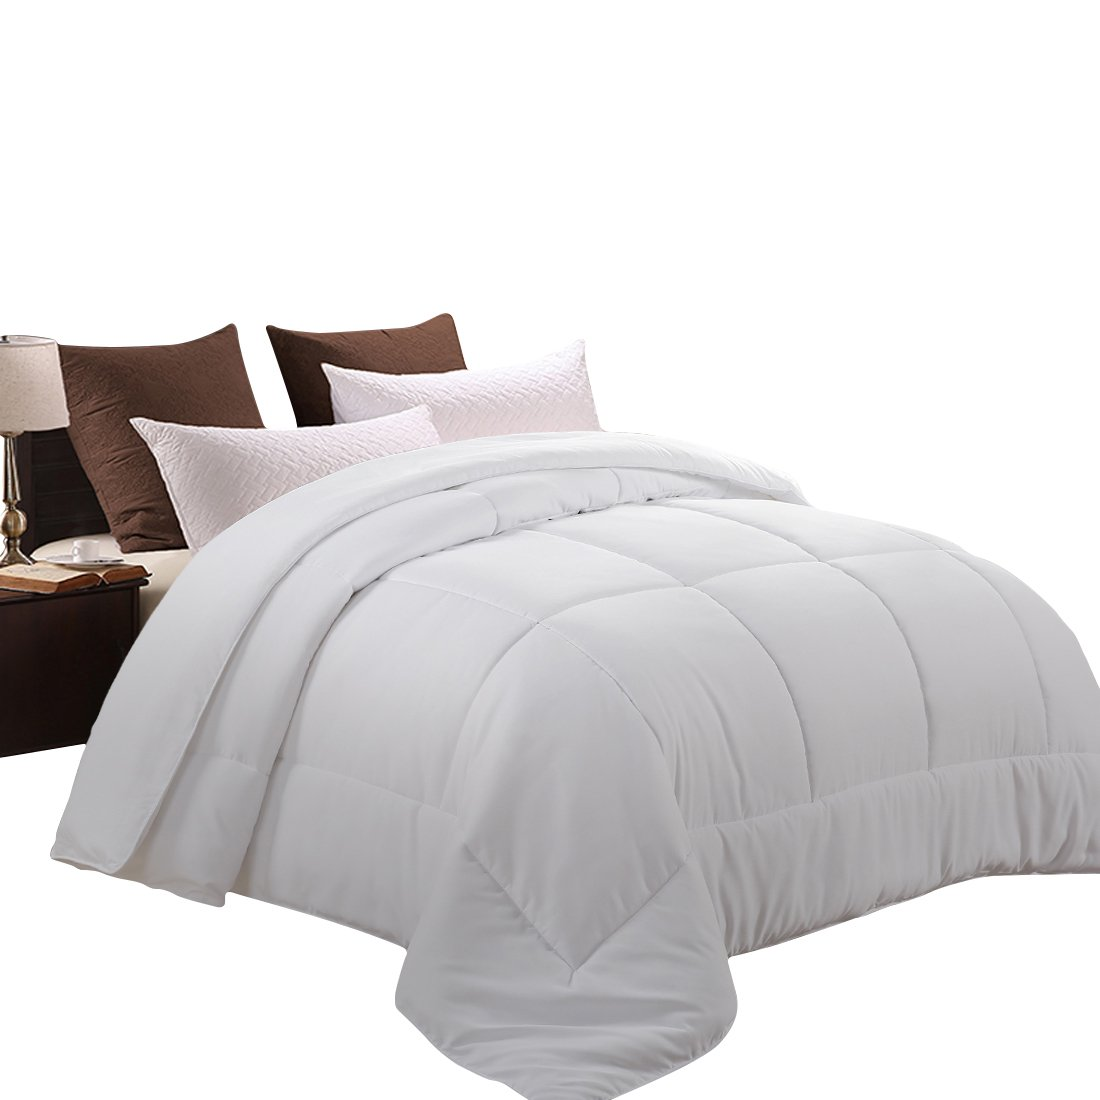 MEROUS Queen Comforter Duvet Insert White- Soft Goose Down Alternative Quilted Warm Comforter,Hypoallergenic and Lightweight Luxury Hotel Collection by